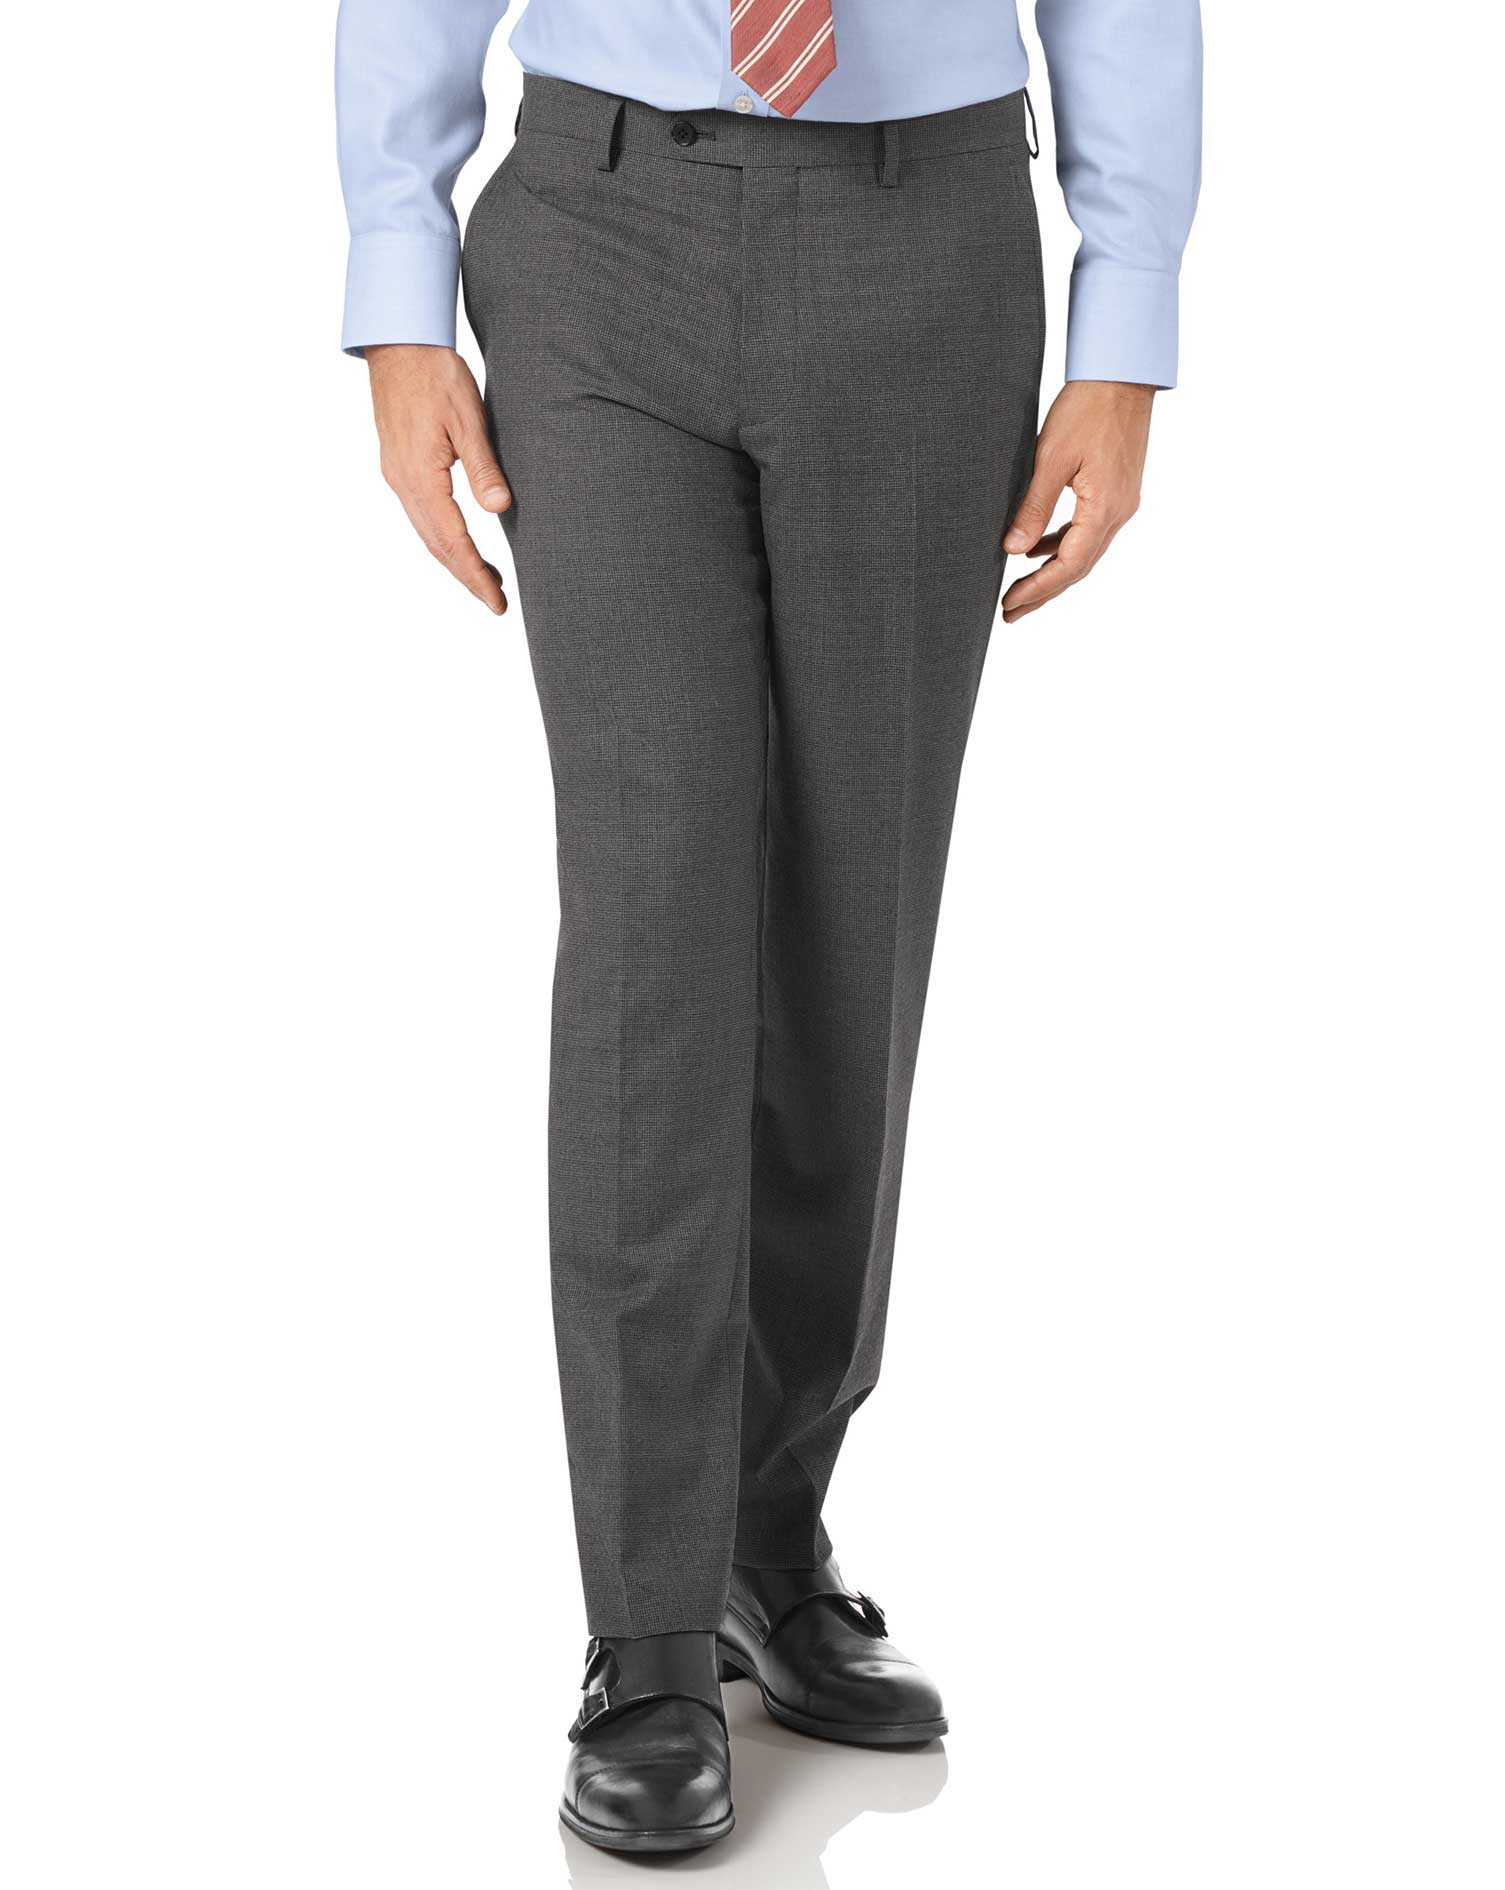 Charcoal Slim Fit Panama Puppytooth Business Suit Trouser Size W32 L38 by Charles Tyrwhitt